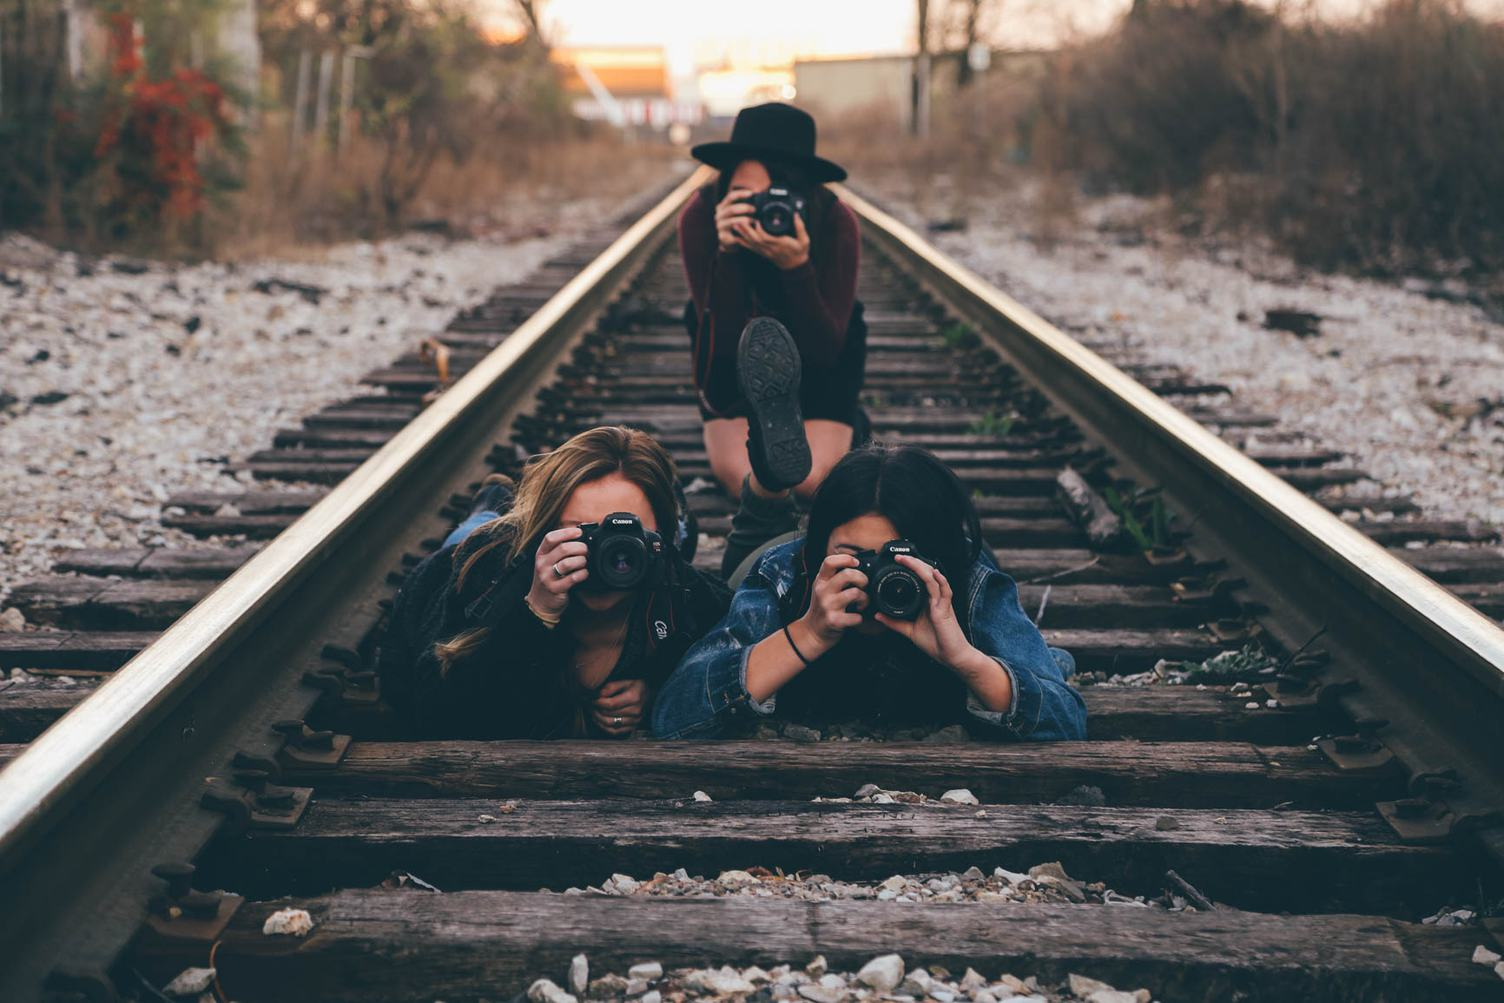 Three Young Girls Taking Pictures on Railroad Tracks